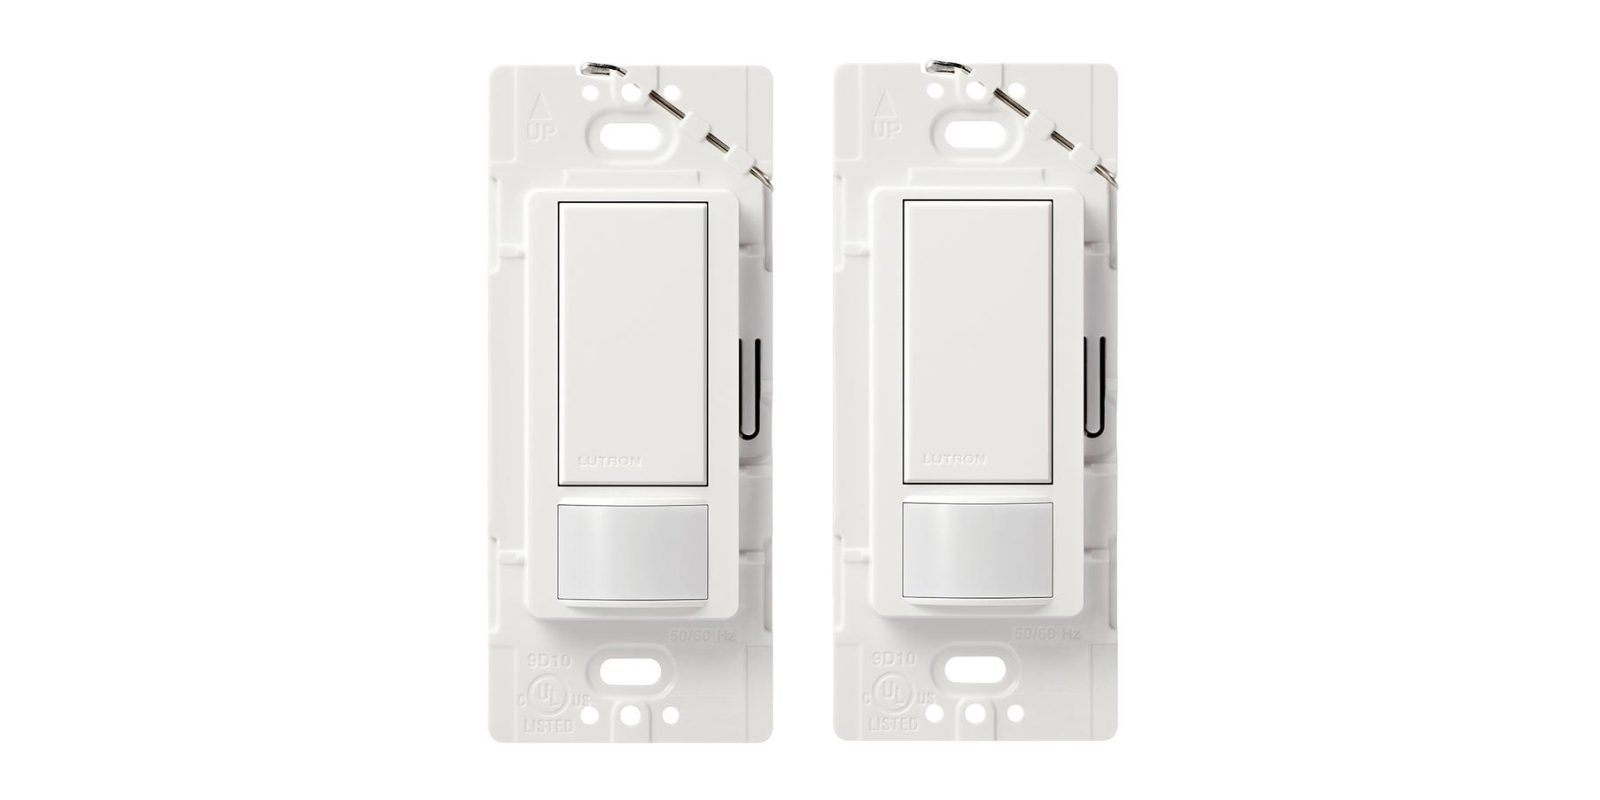 Get two Lutron motion sensing light switches for $30, more in today's Green Deals